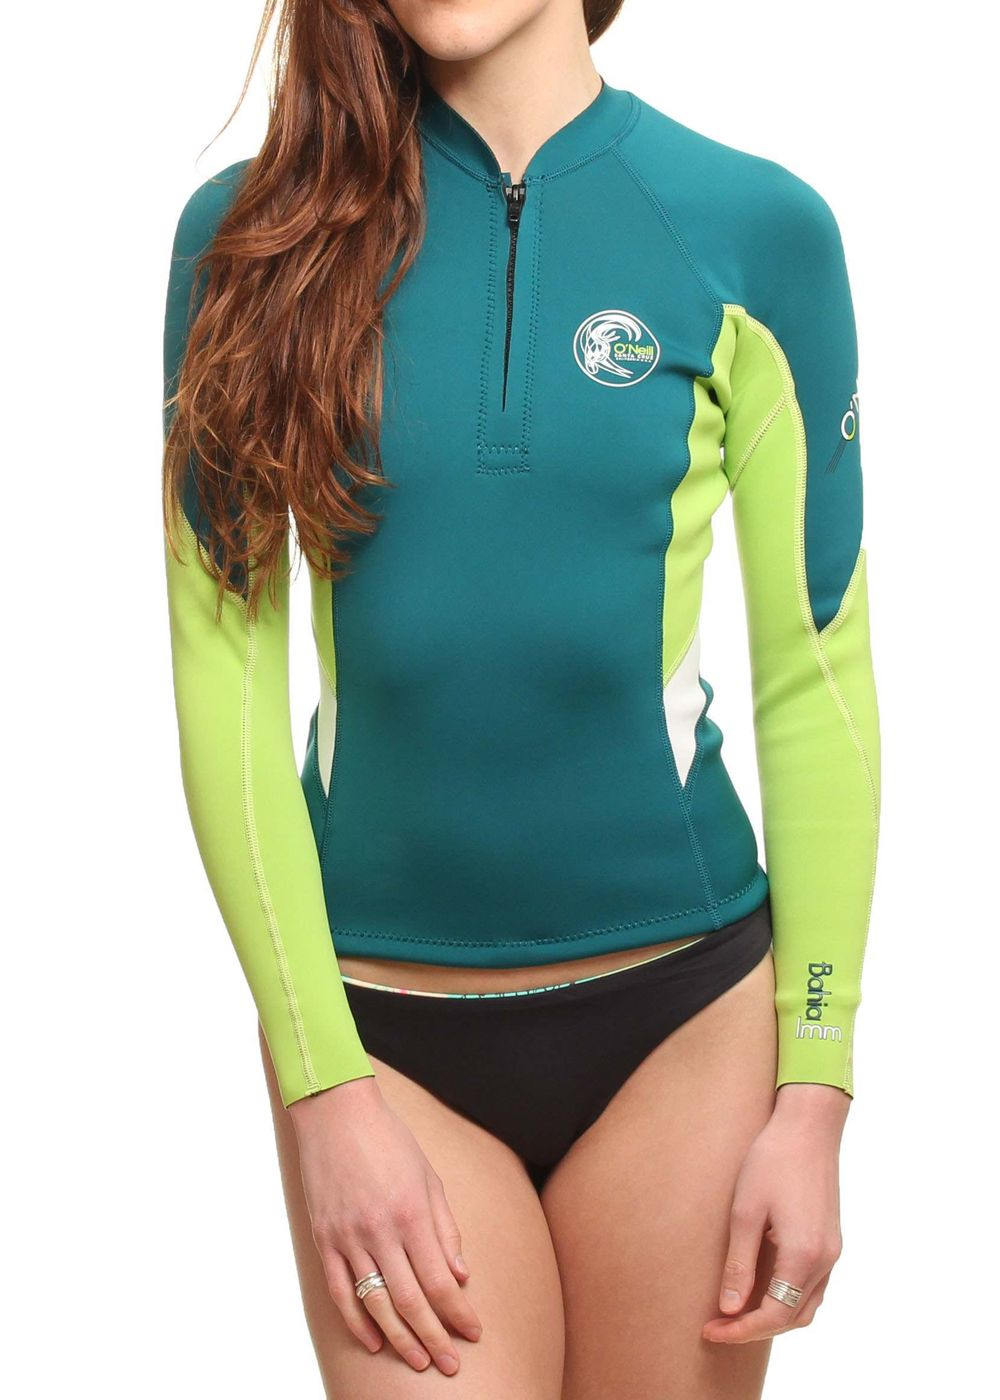 Oneill Womens Bahia Front Zip Wetsuit Jacket Teal Picture